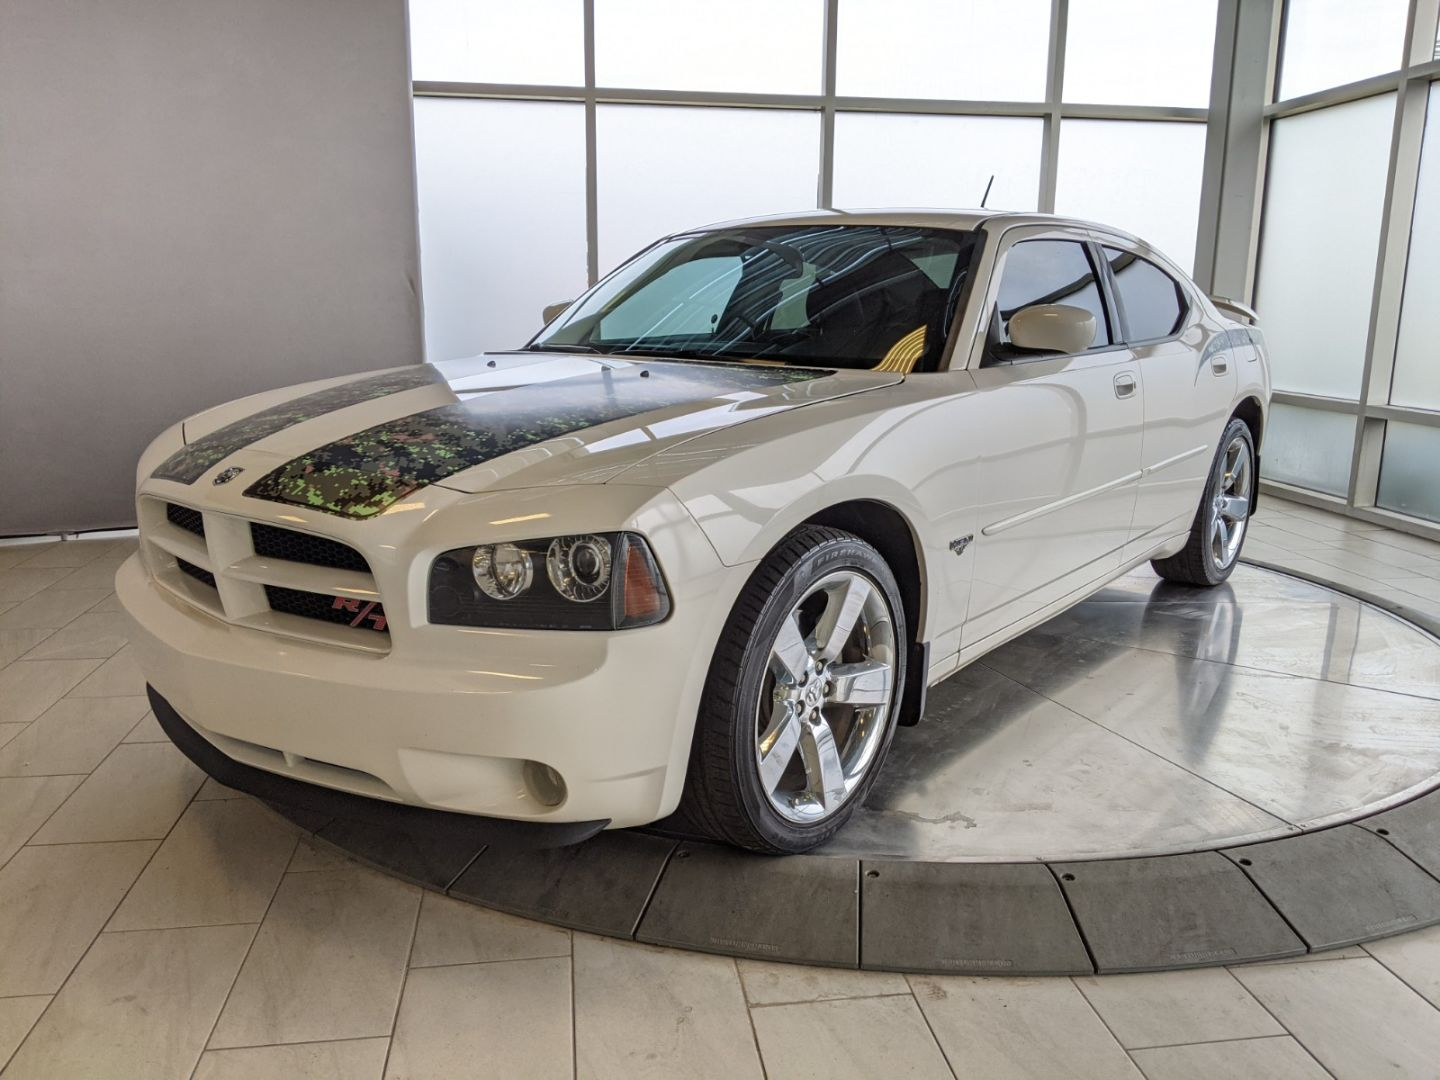 2008 Dodge Charger R/T for sale in Edmonton, Alberta